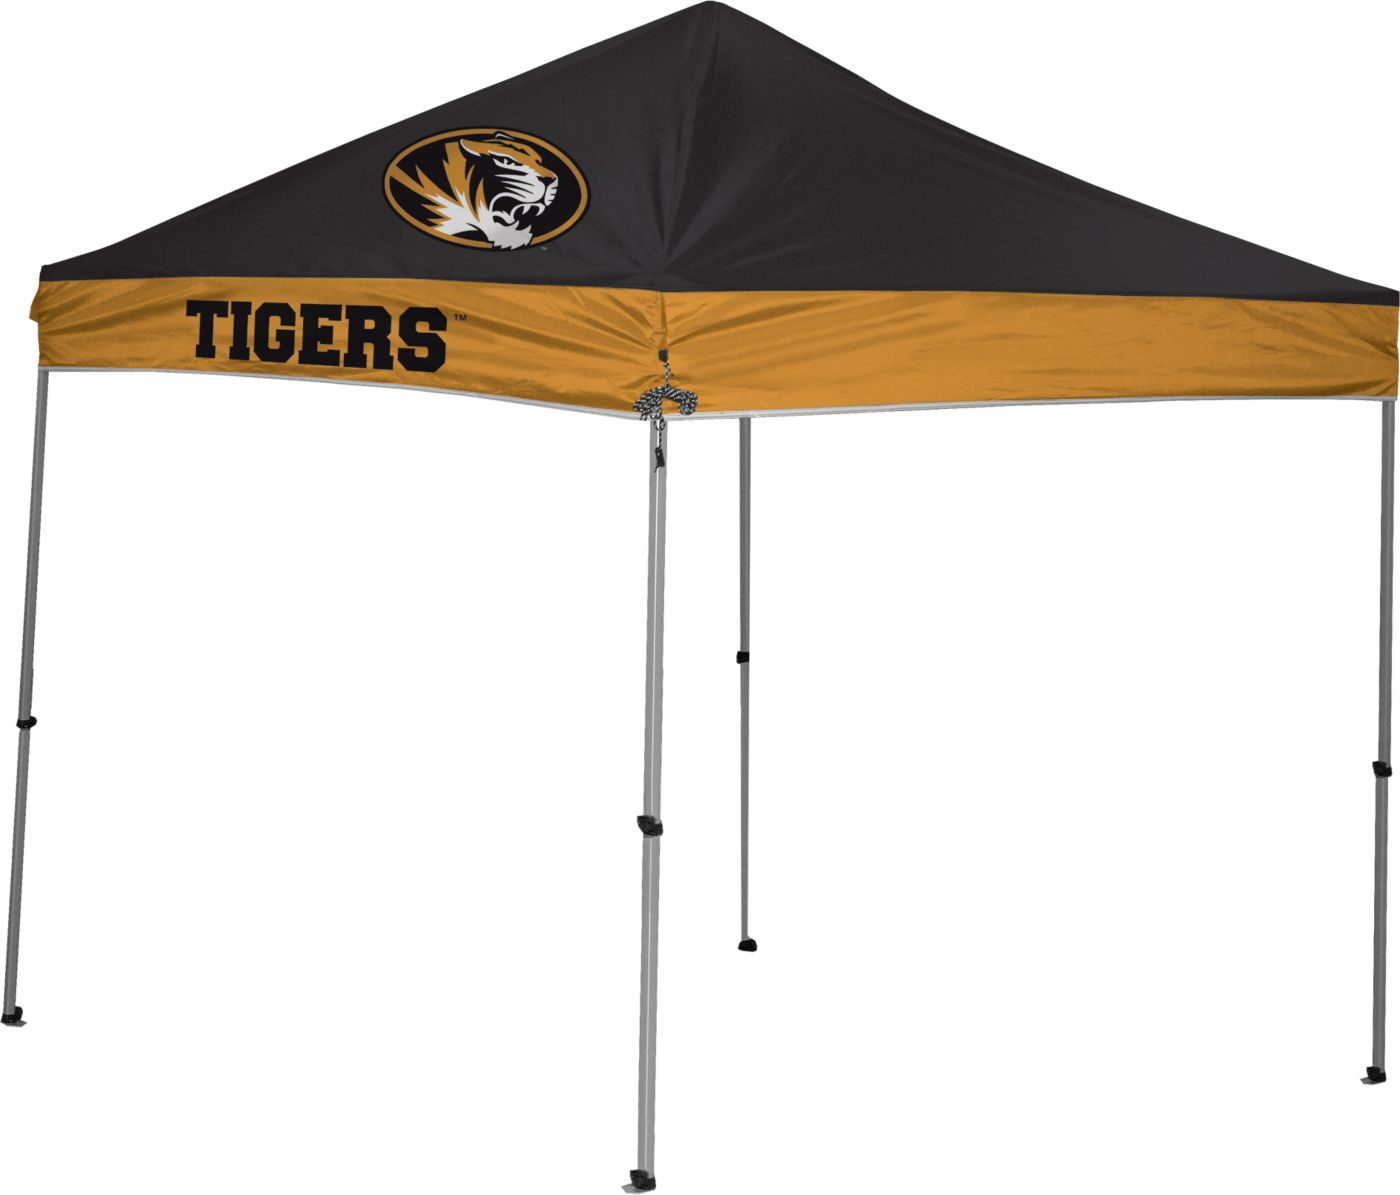 Rawlings Missouri Tigers 9' x 9' Sideline Canopy Tent